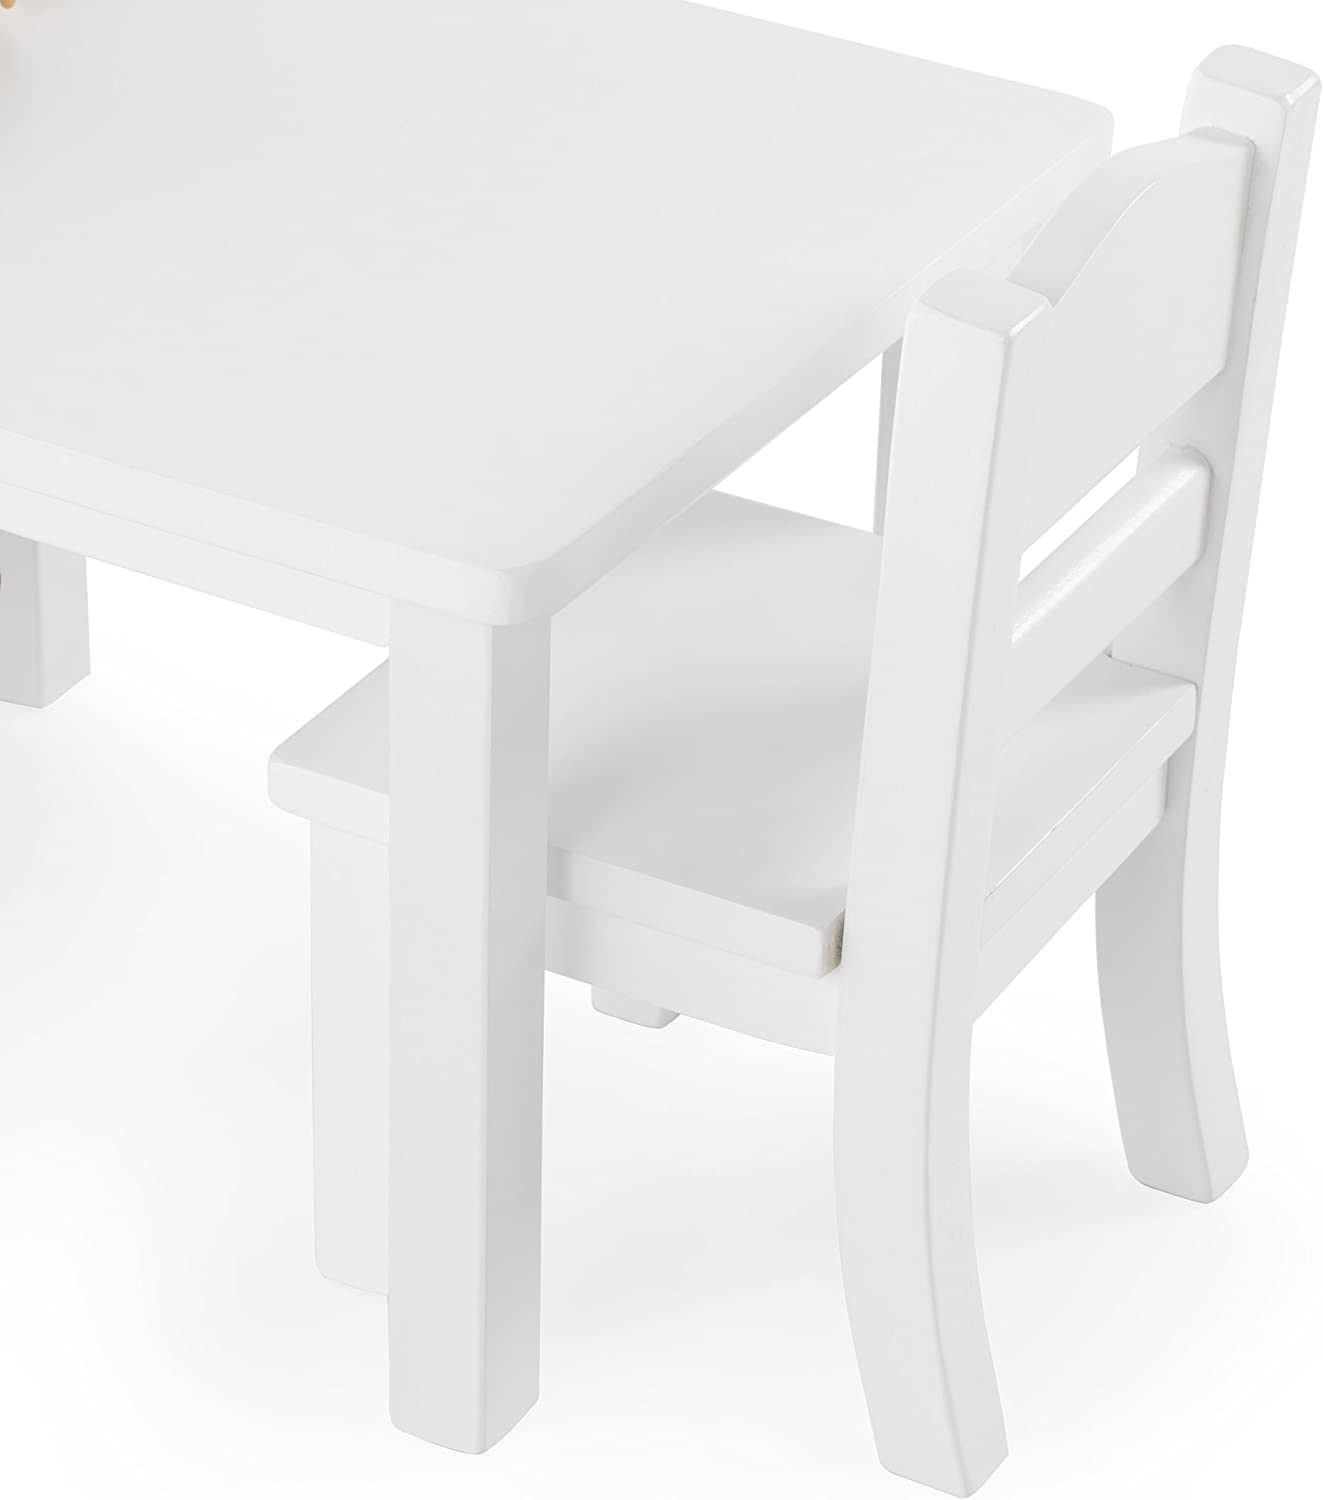 Fits 18 Americn Girl Dolls G98115 Guidecraft Espresso Dark Cherry Wooden Doll Table and Chairs Set